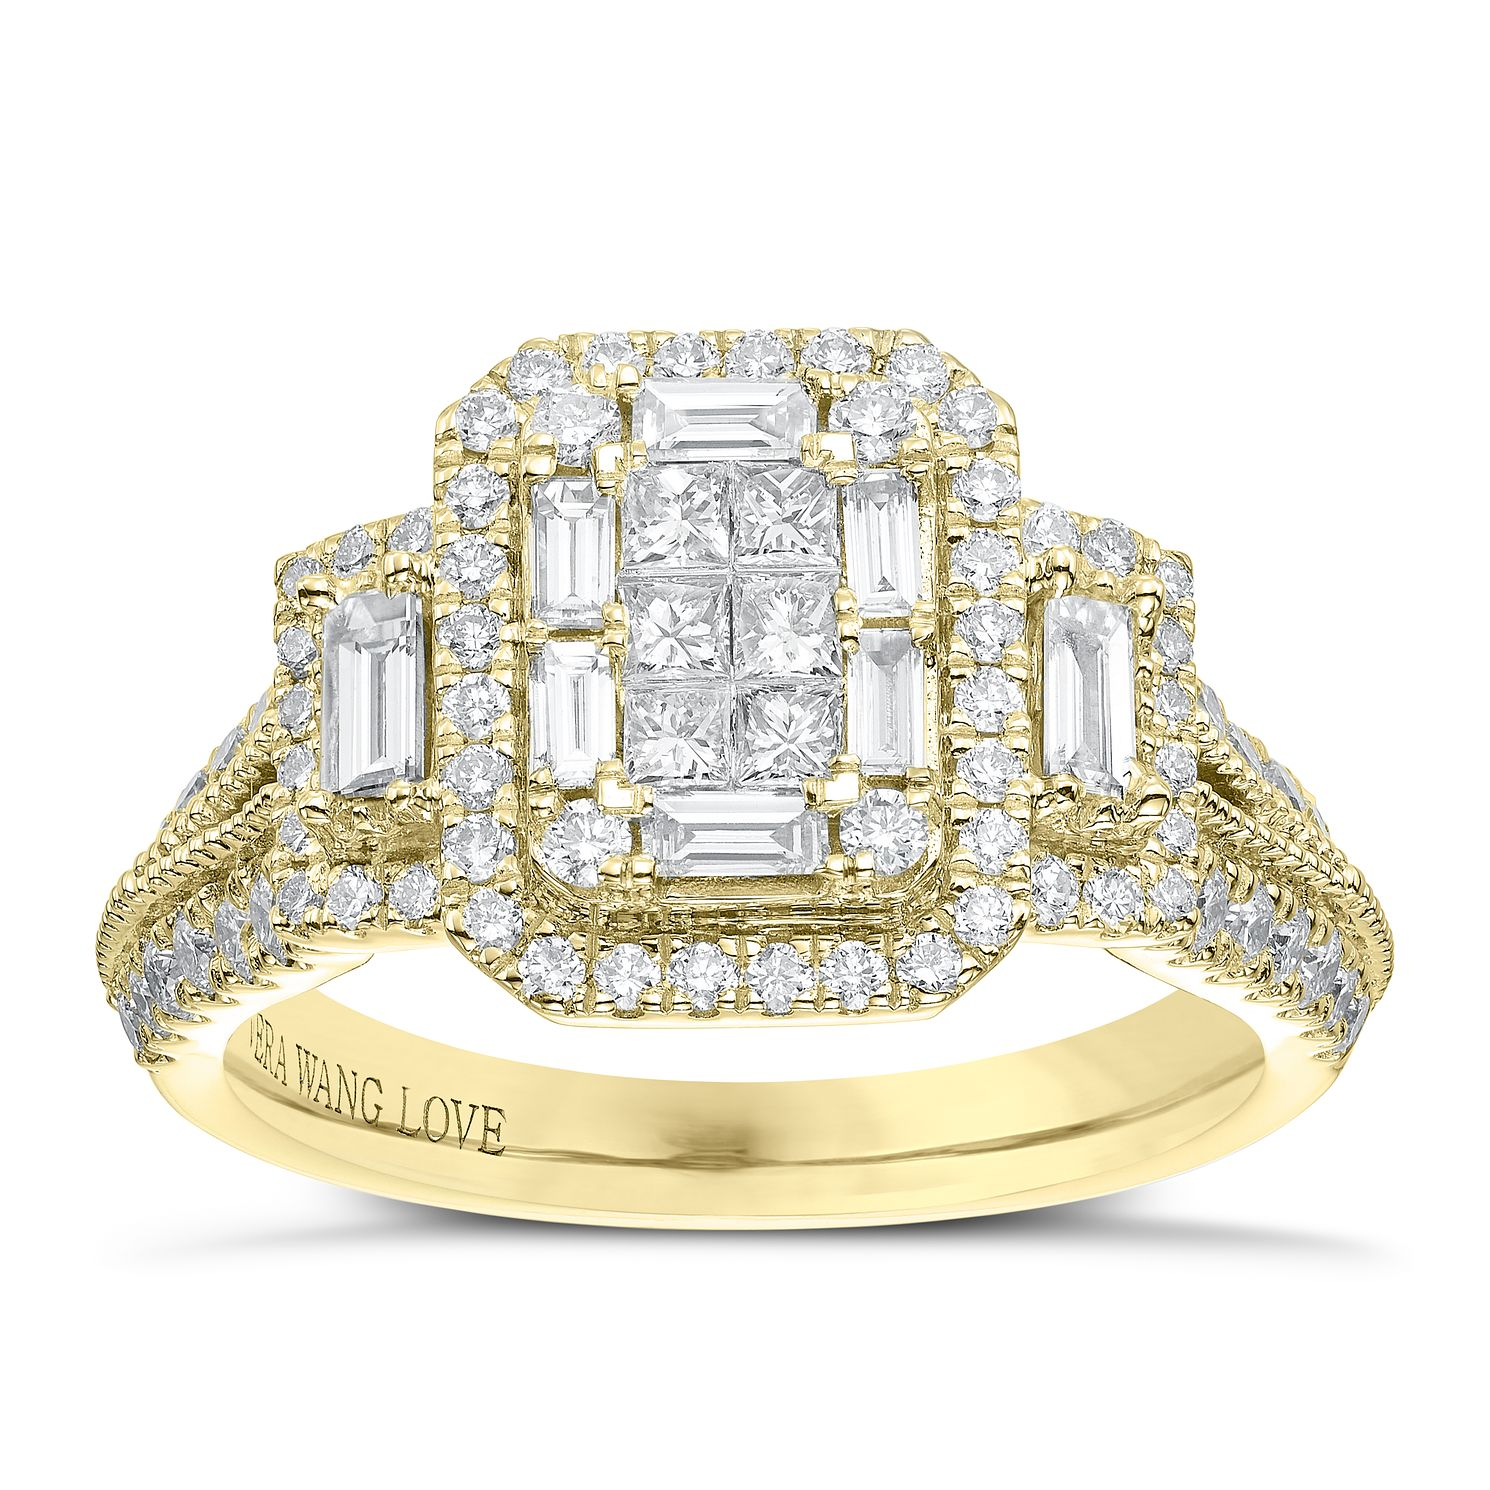 Vera Wang 18ct Yellow Gold 0.95ct Total Diamond Cluster Ring - Product number 6915205